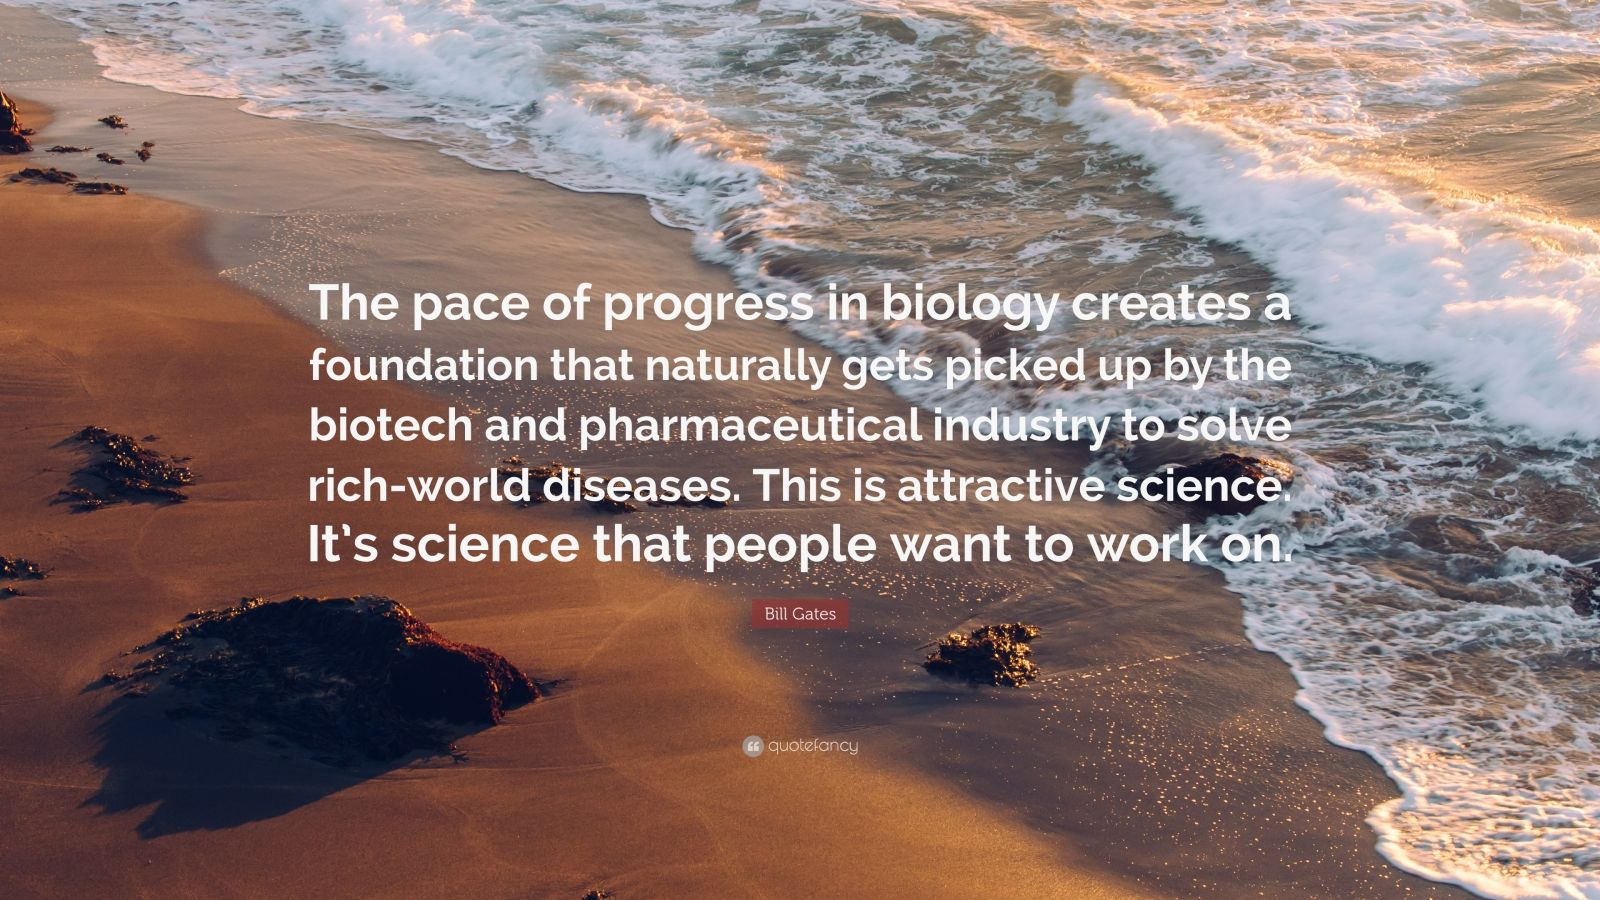 """Bill Gates Quote: """"The pace of progress in biology creates a foundation that naturally gets picked up by the biotech and pharmaceutical industry to solve rich-world diseases. This is attractive science. It's science that people want to work on."""""""